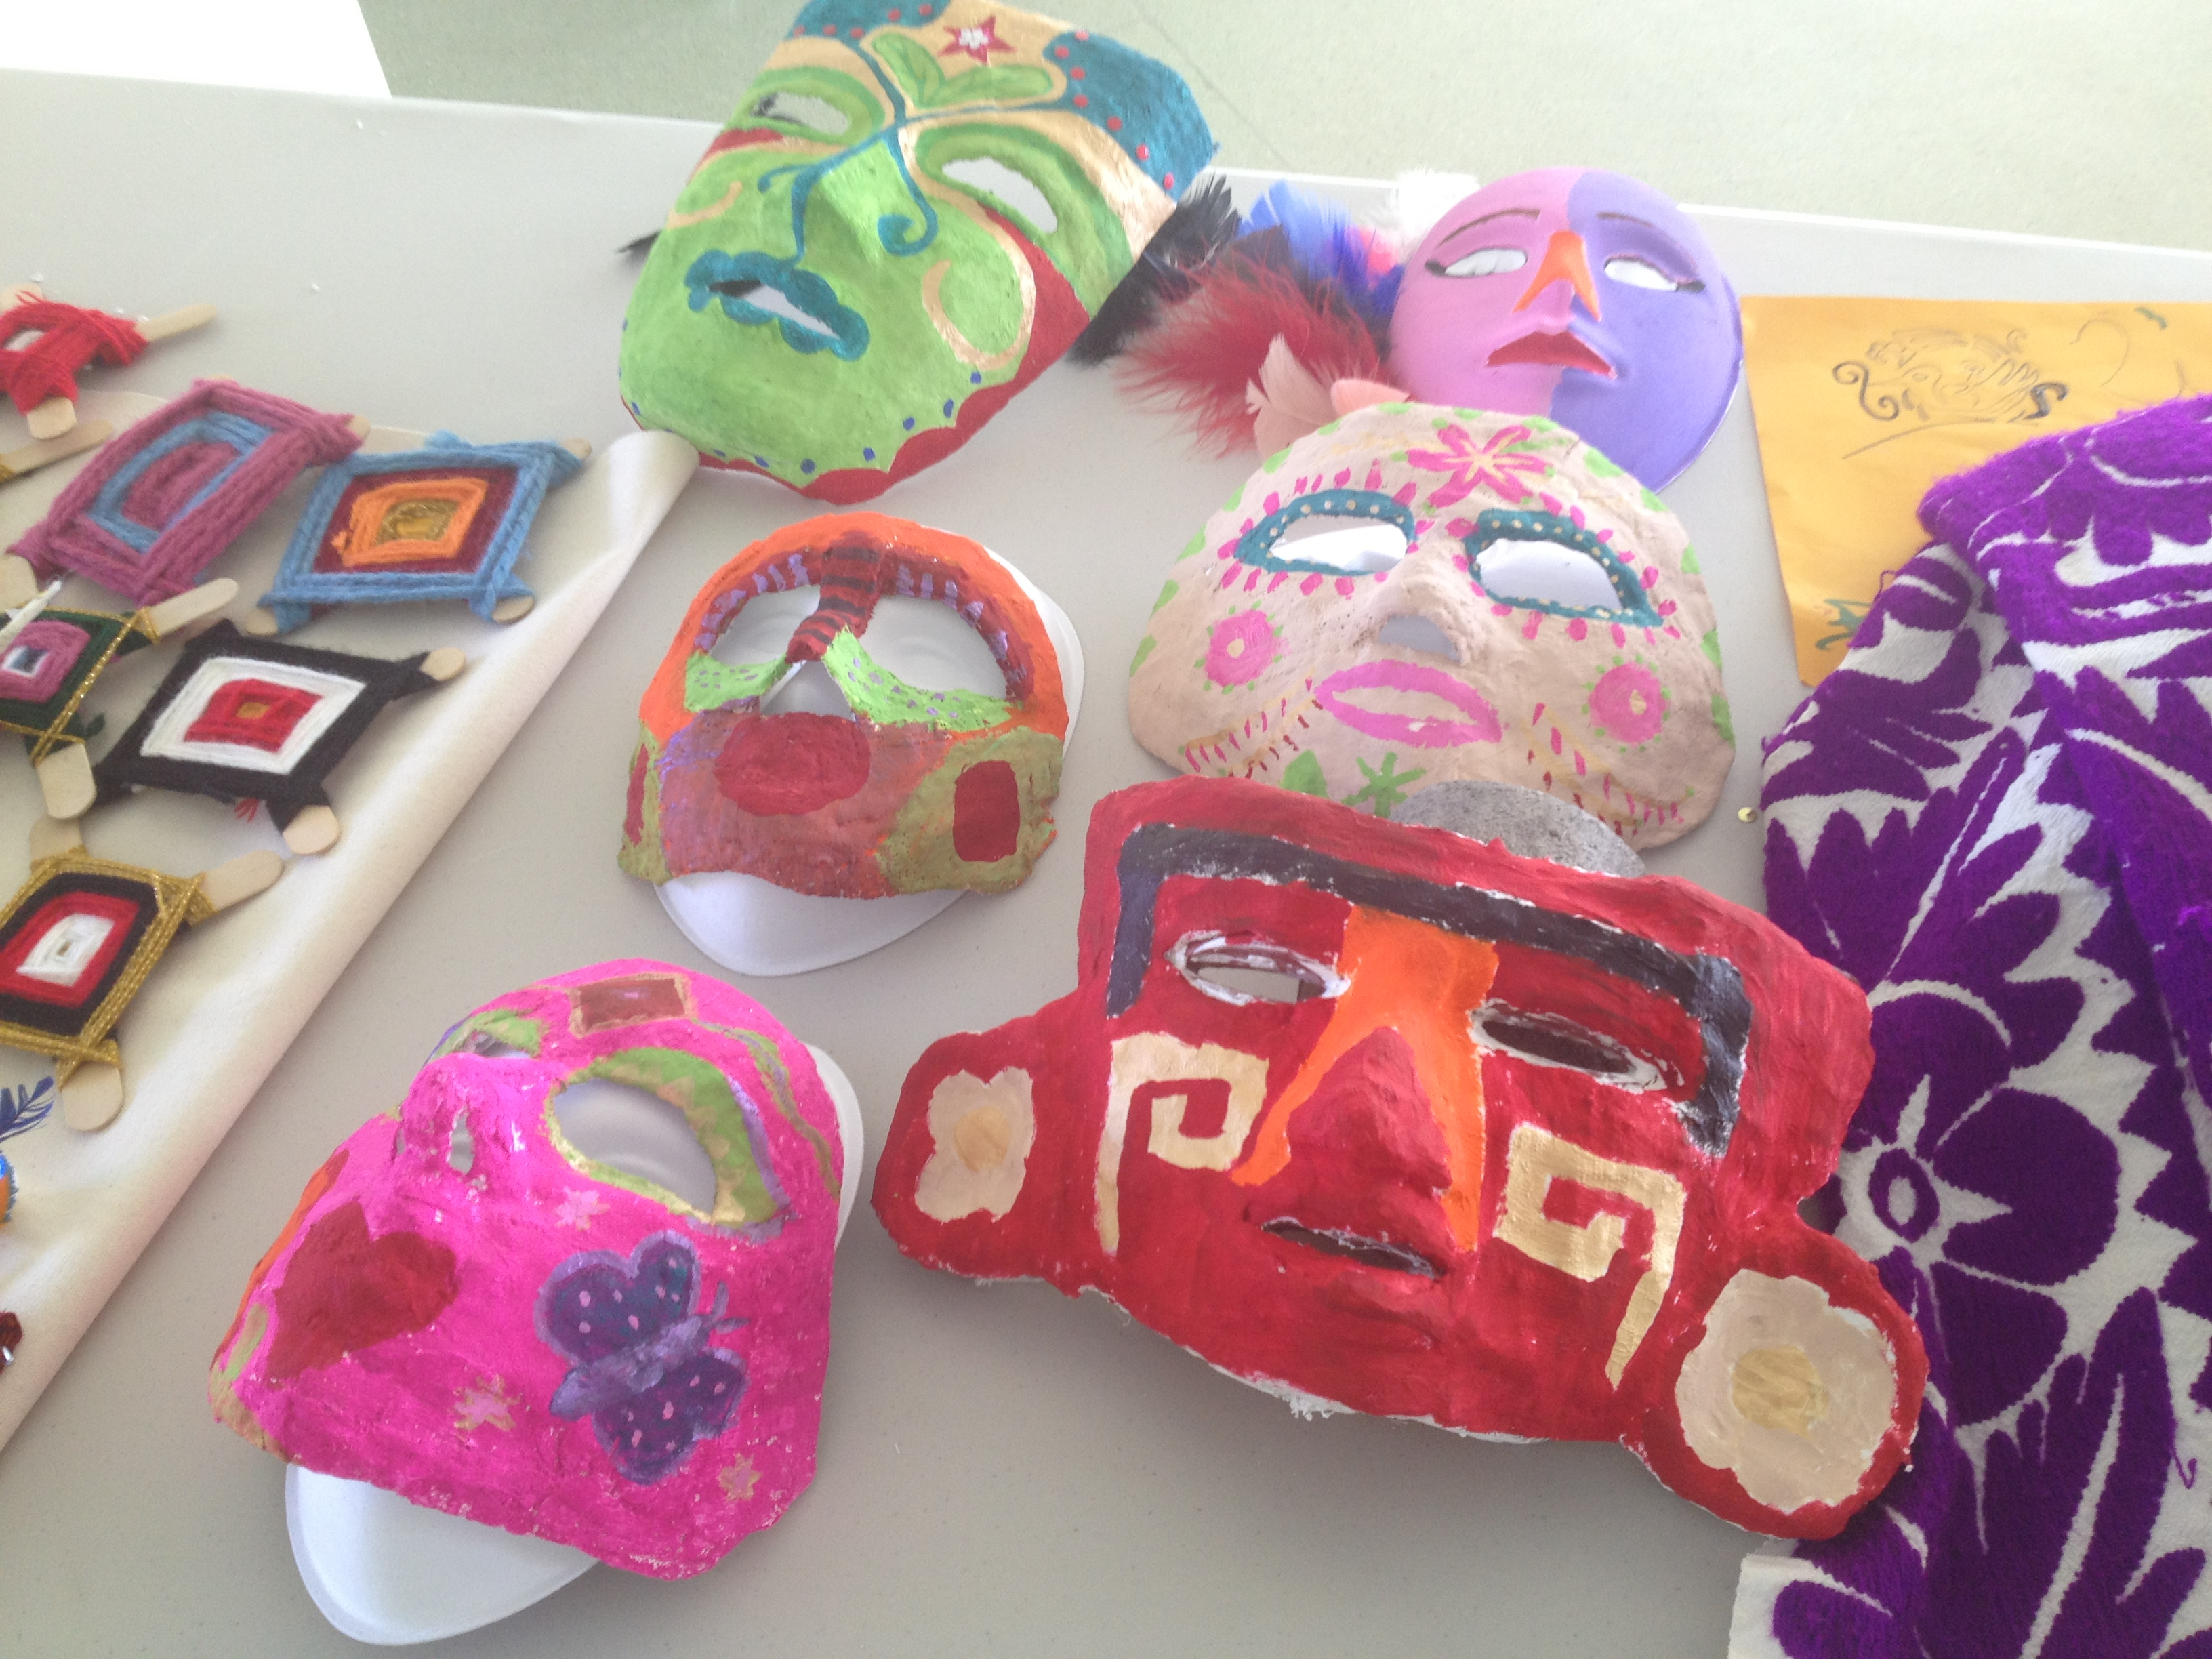 Mask making and cultural arts&crafts